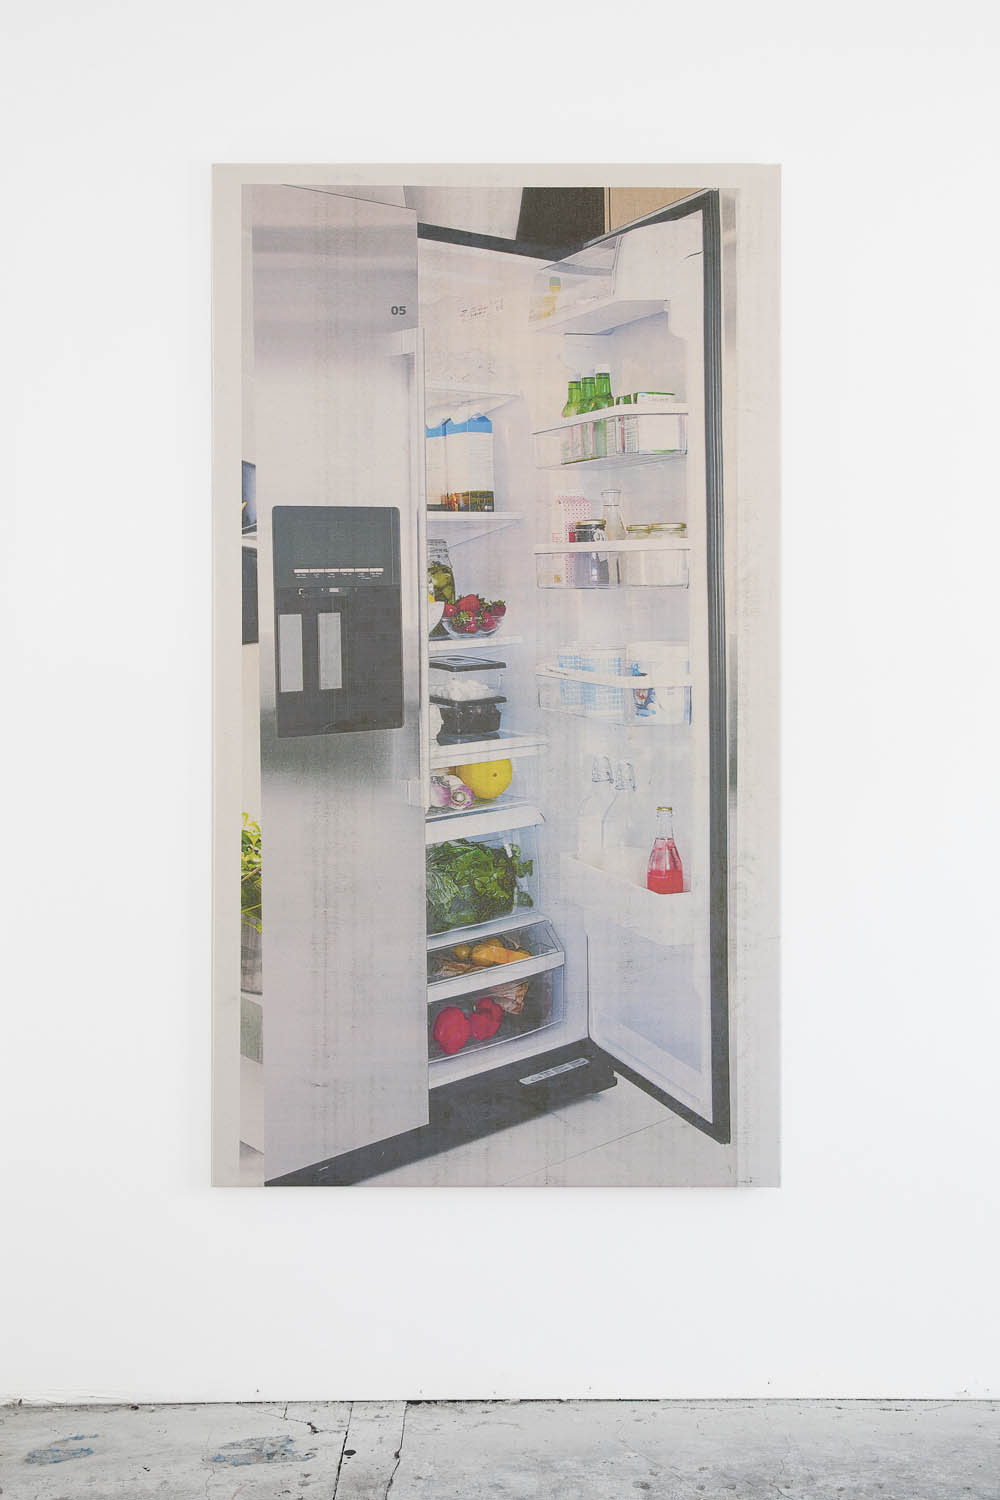 Untitled (Fridge Crop)